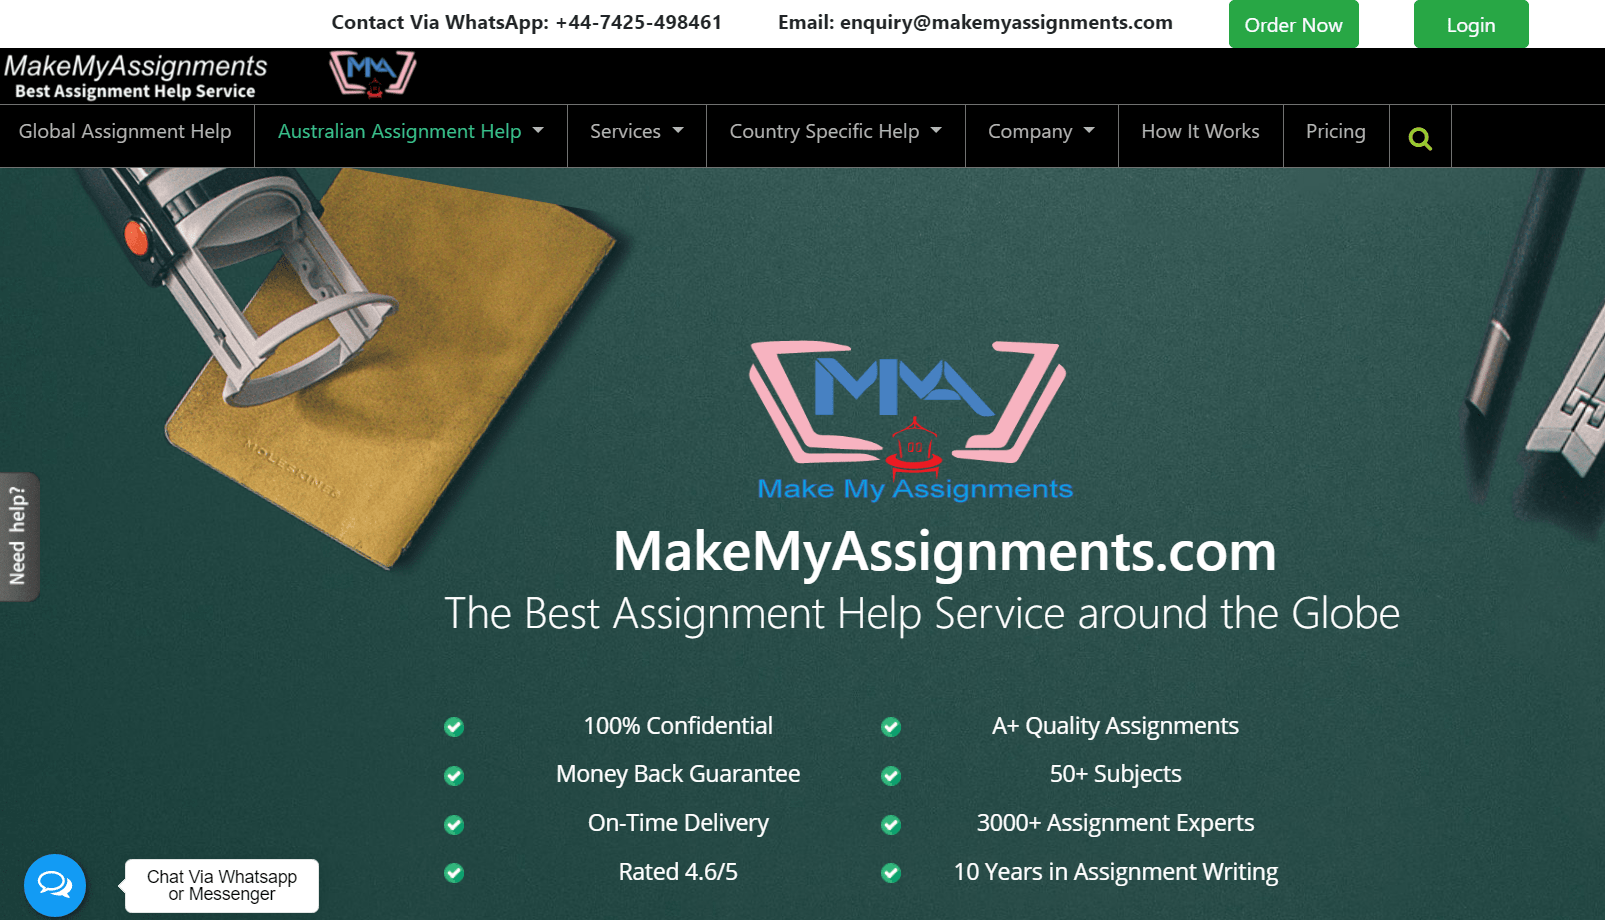 makemyassignments.com